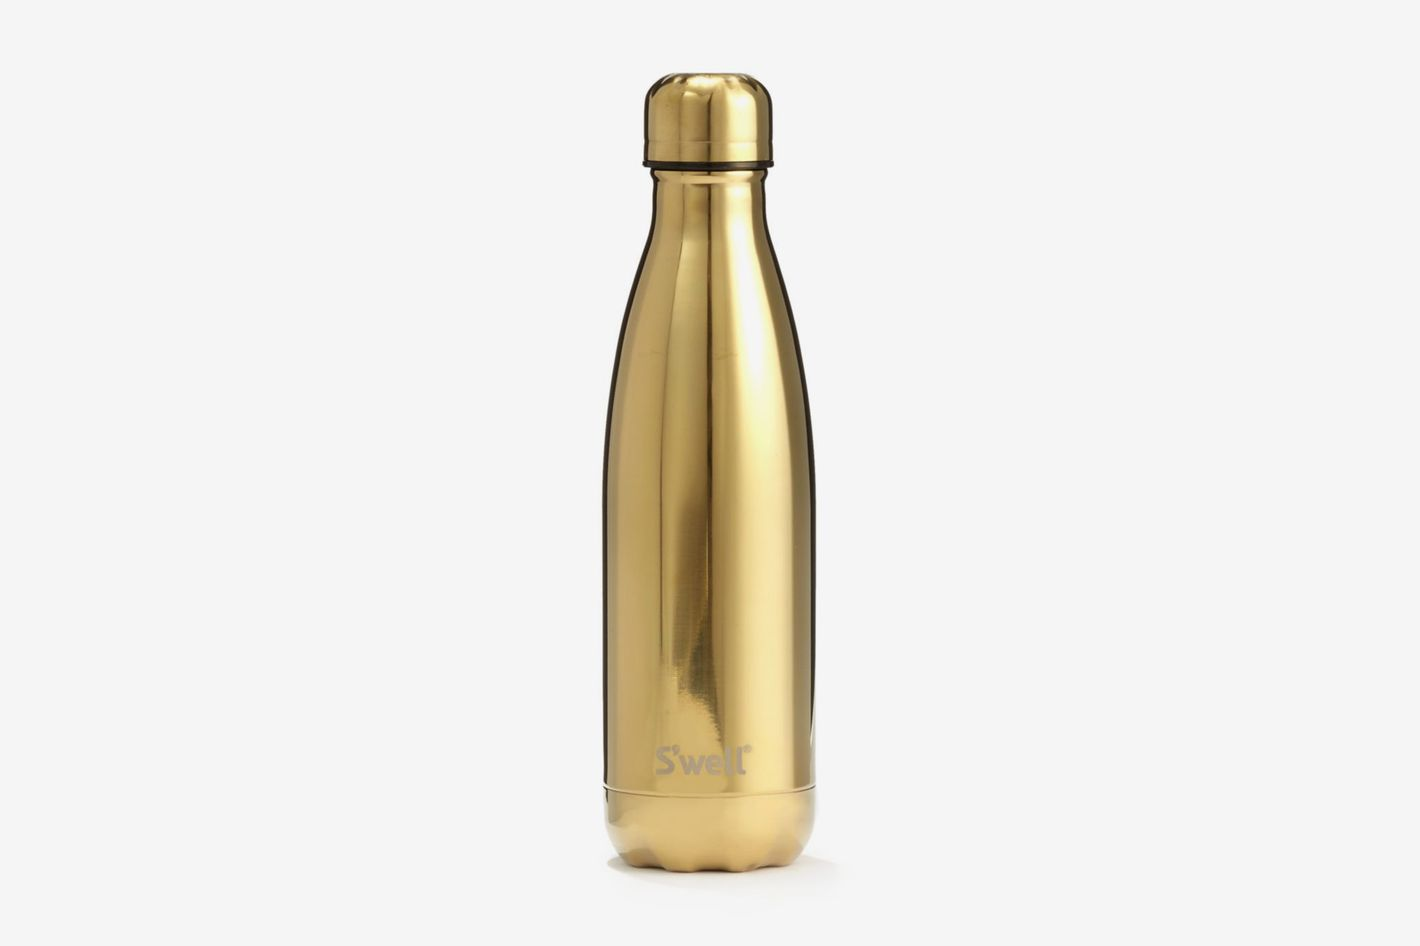 S'well Gold Water Bottle/17 oz.